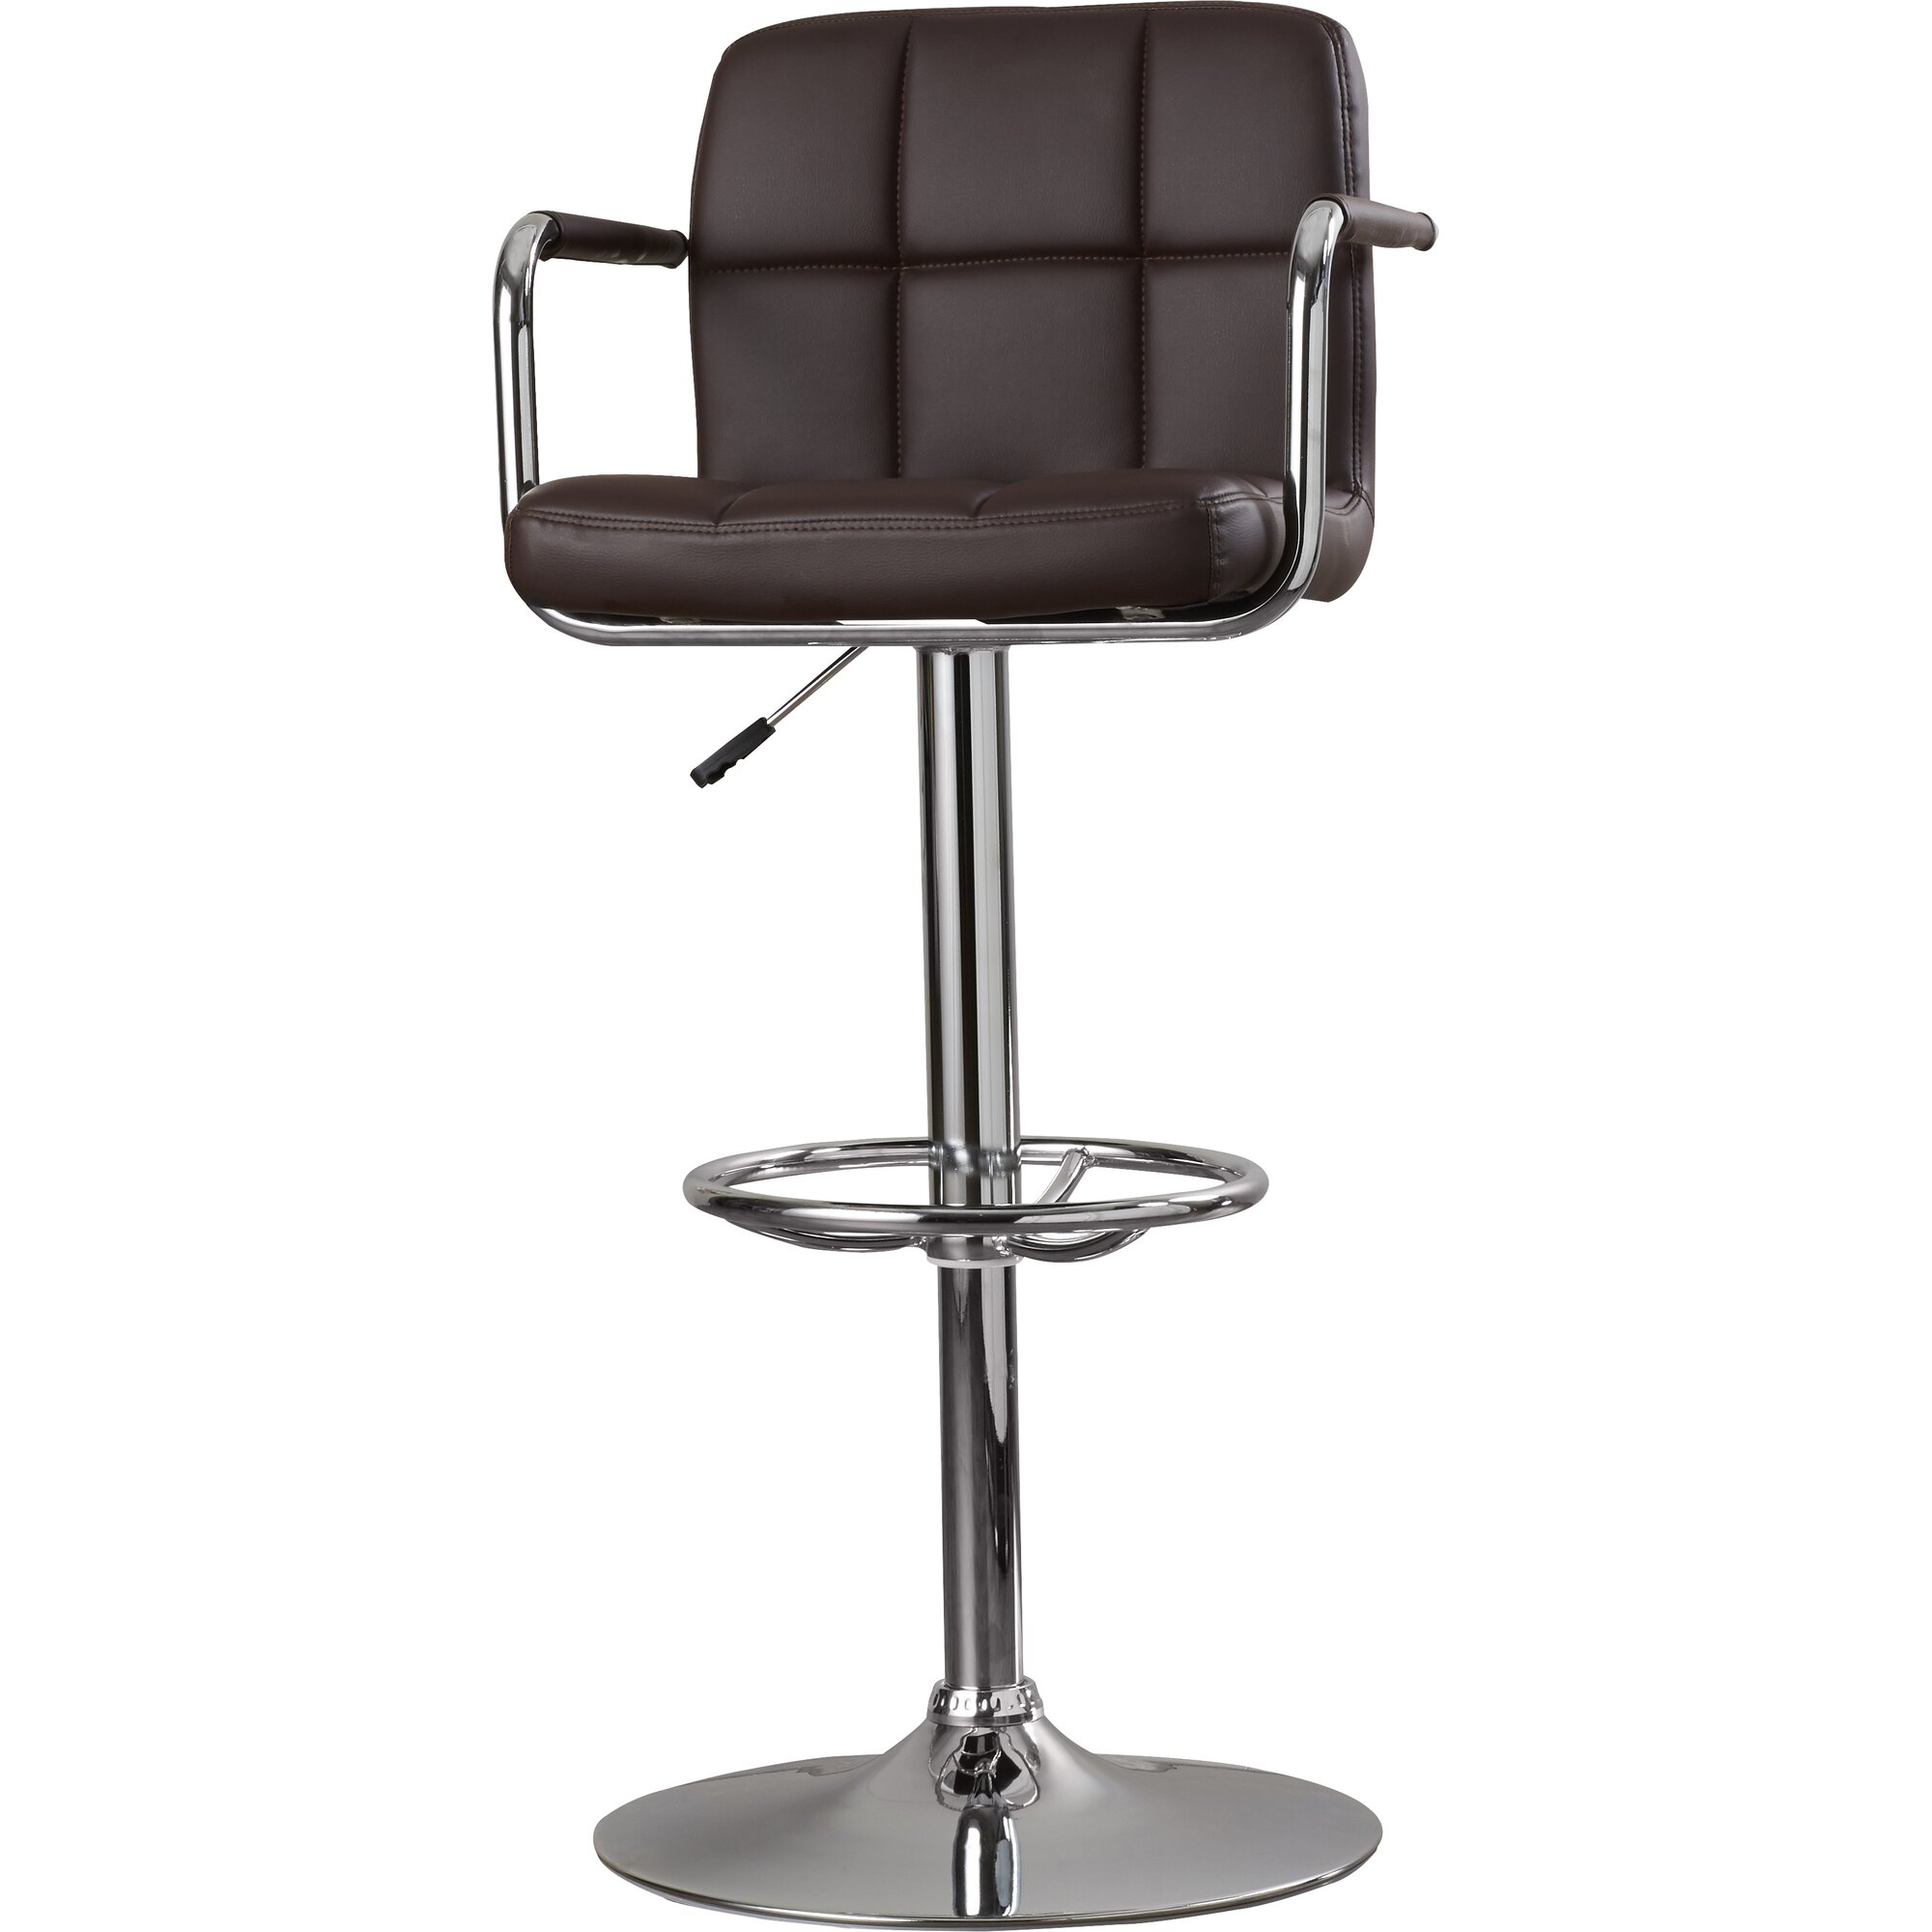 Zipcode Design Faith Adjustable Height Swivel Bar Stool